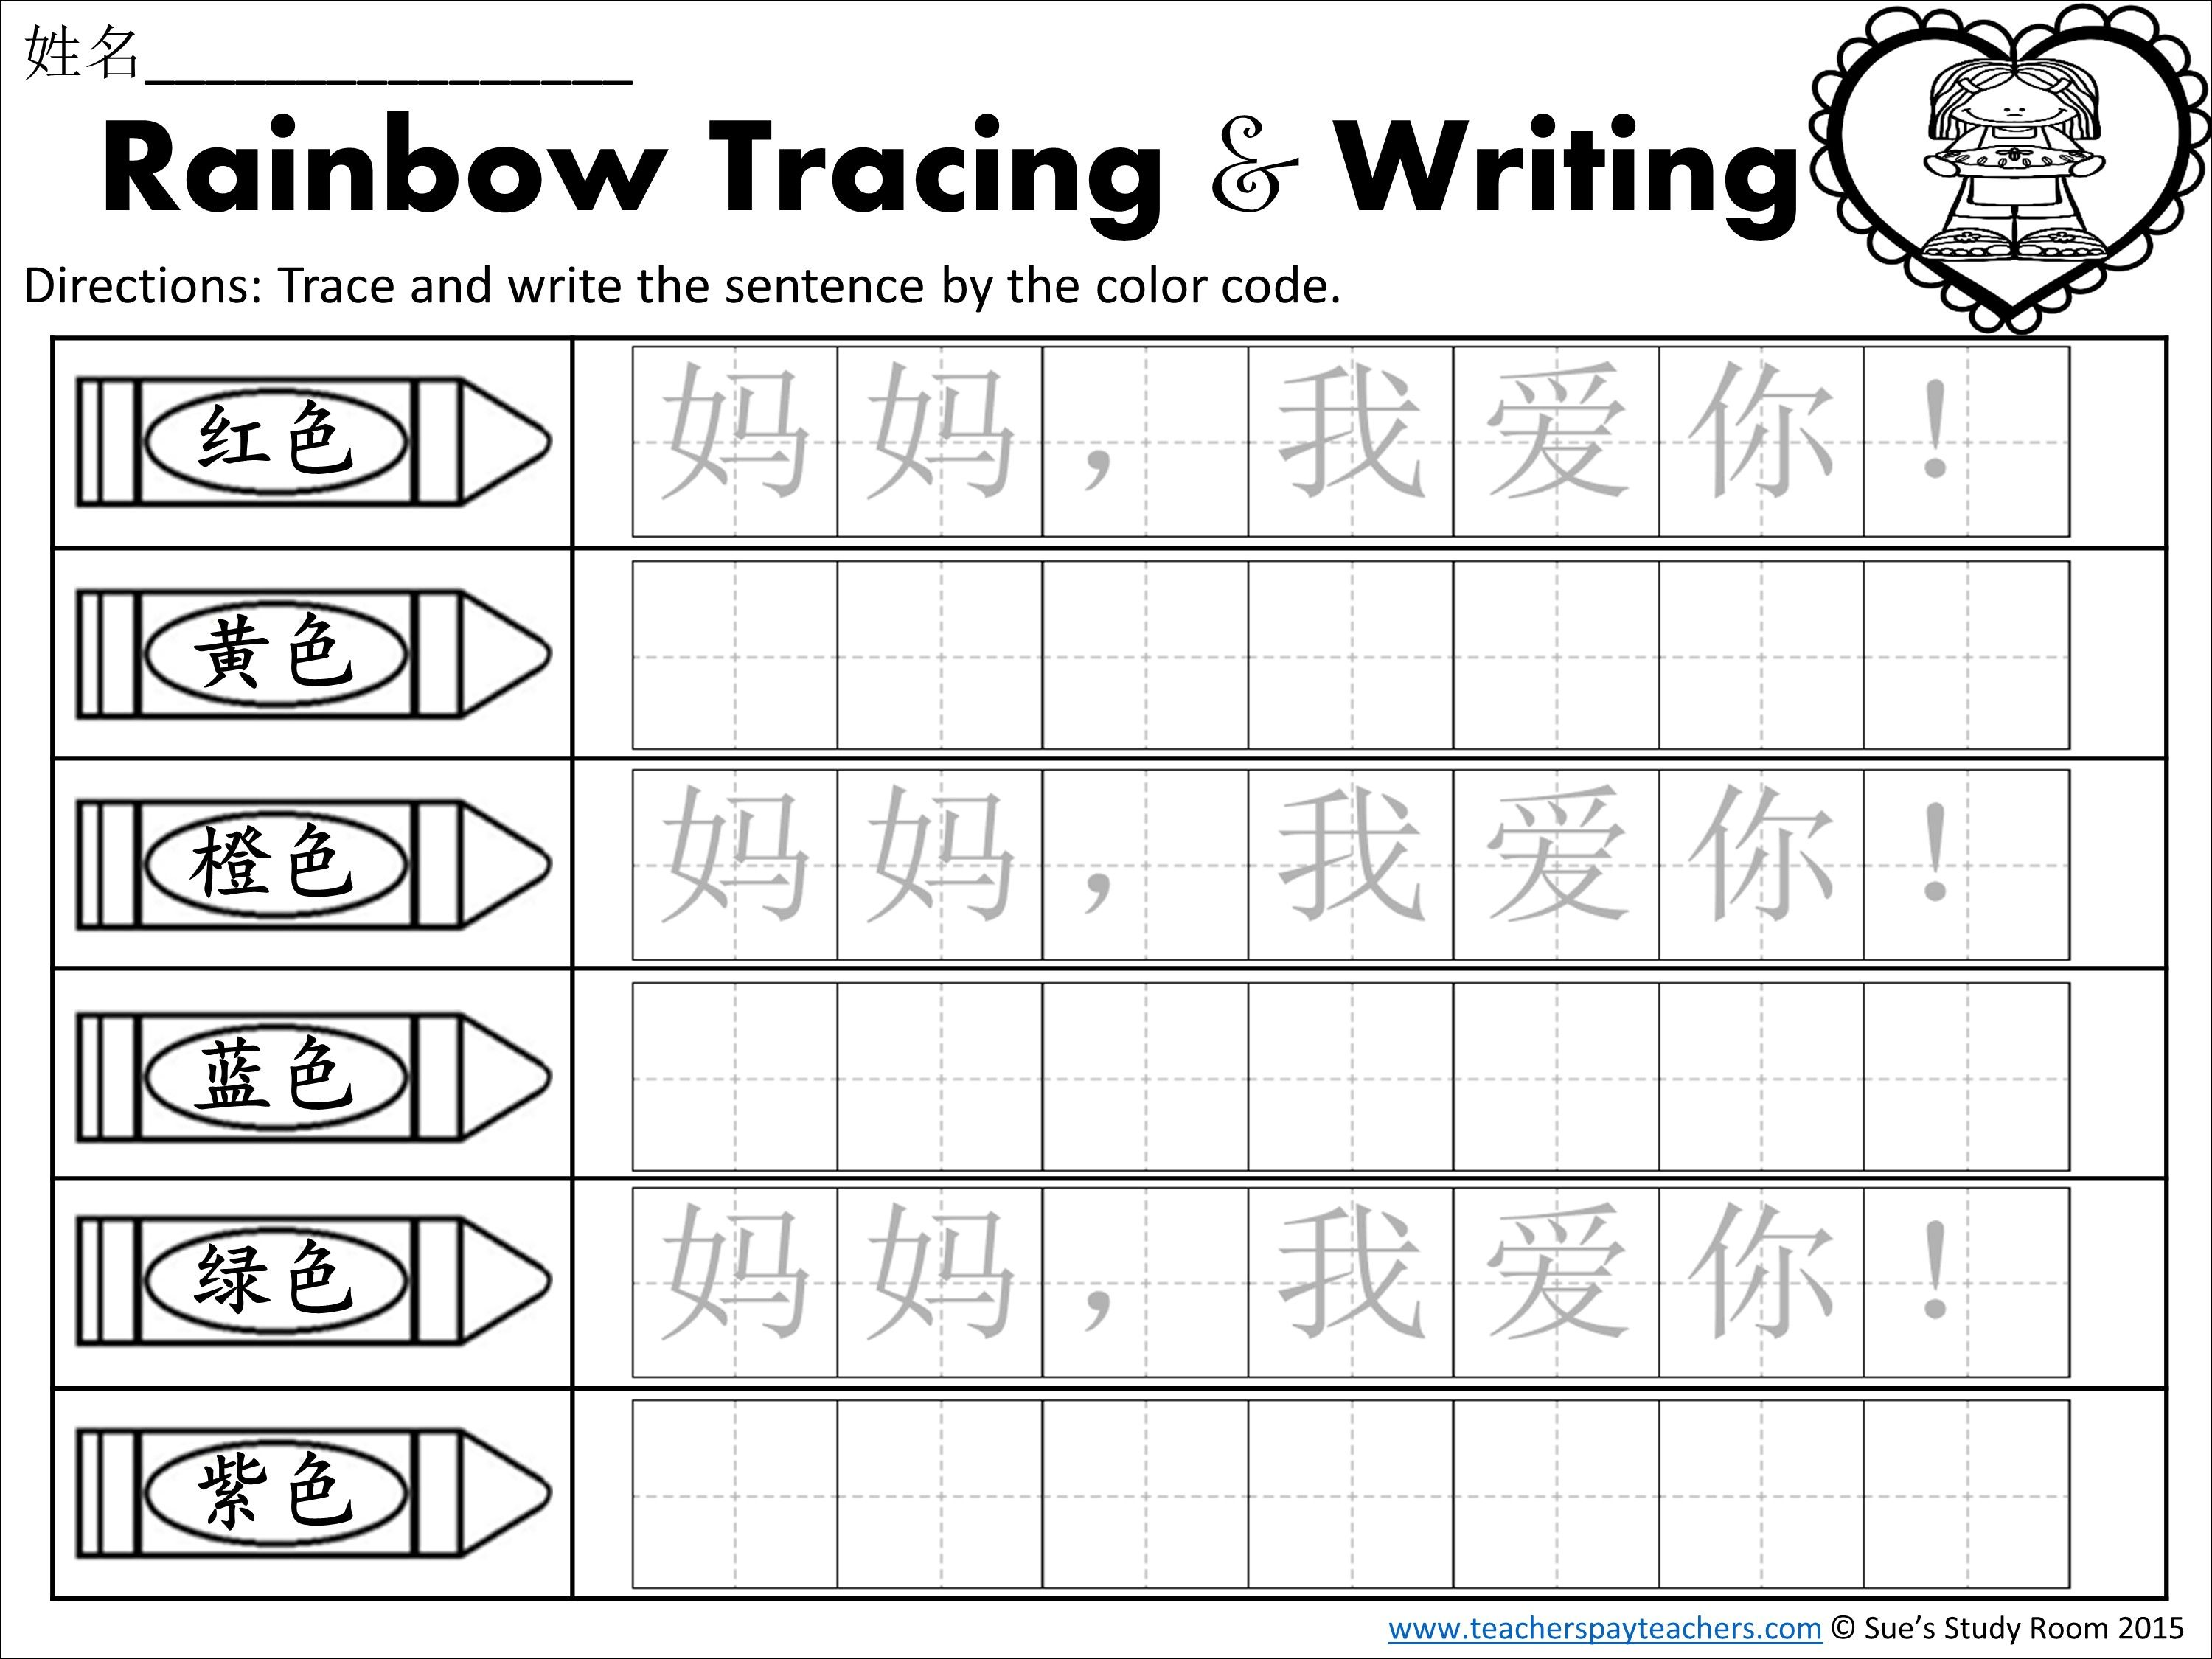 Worksheets For China : Freebie mother s day rainbow tracing and writing chinese